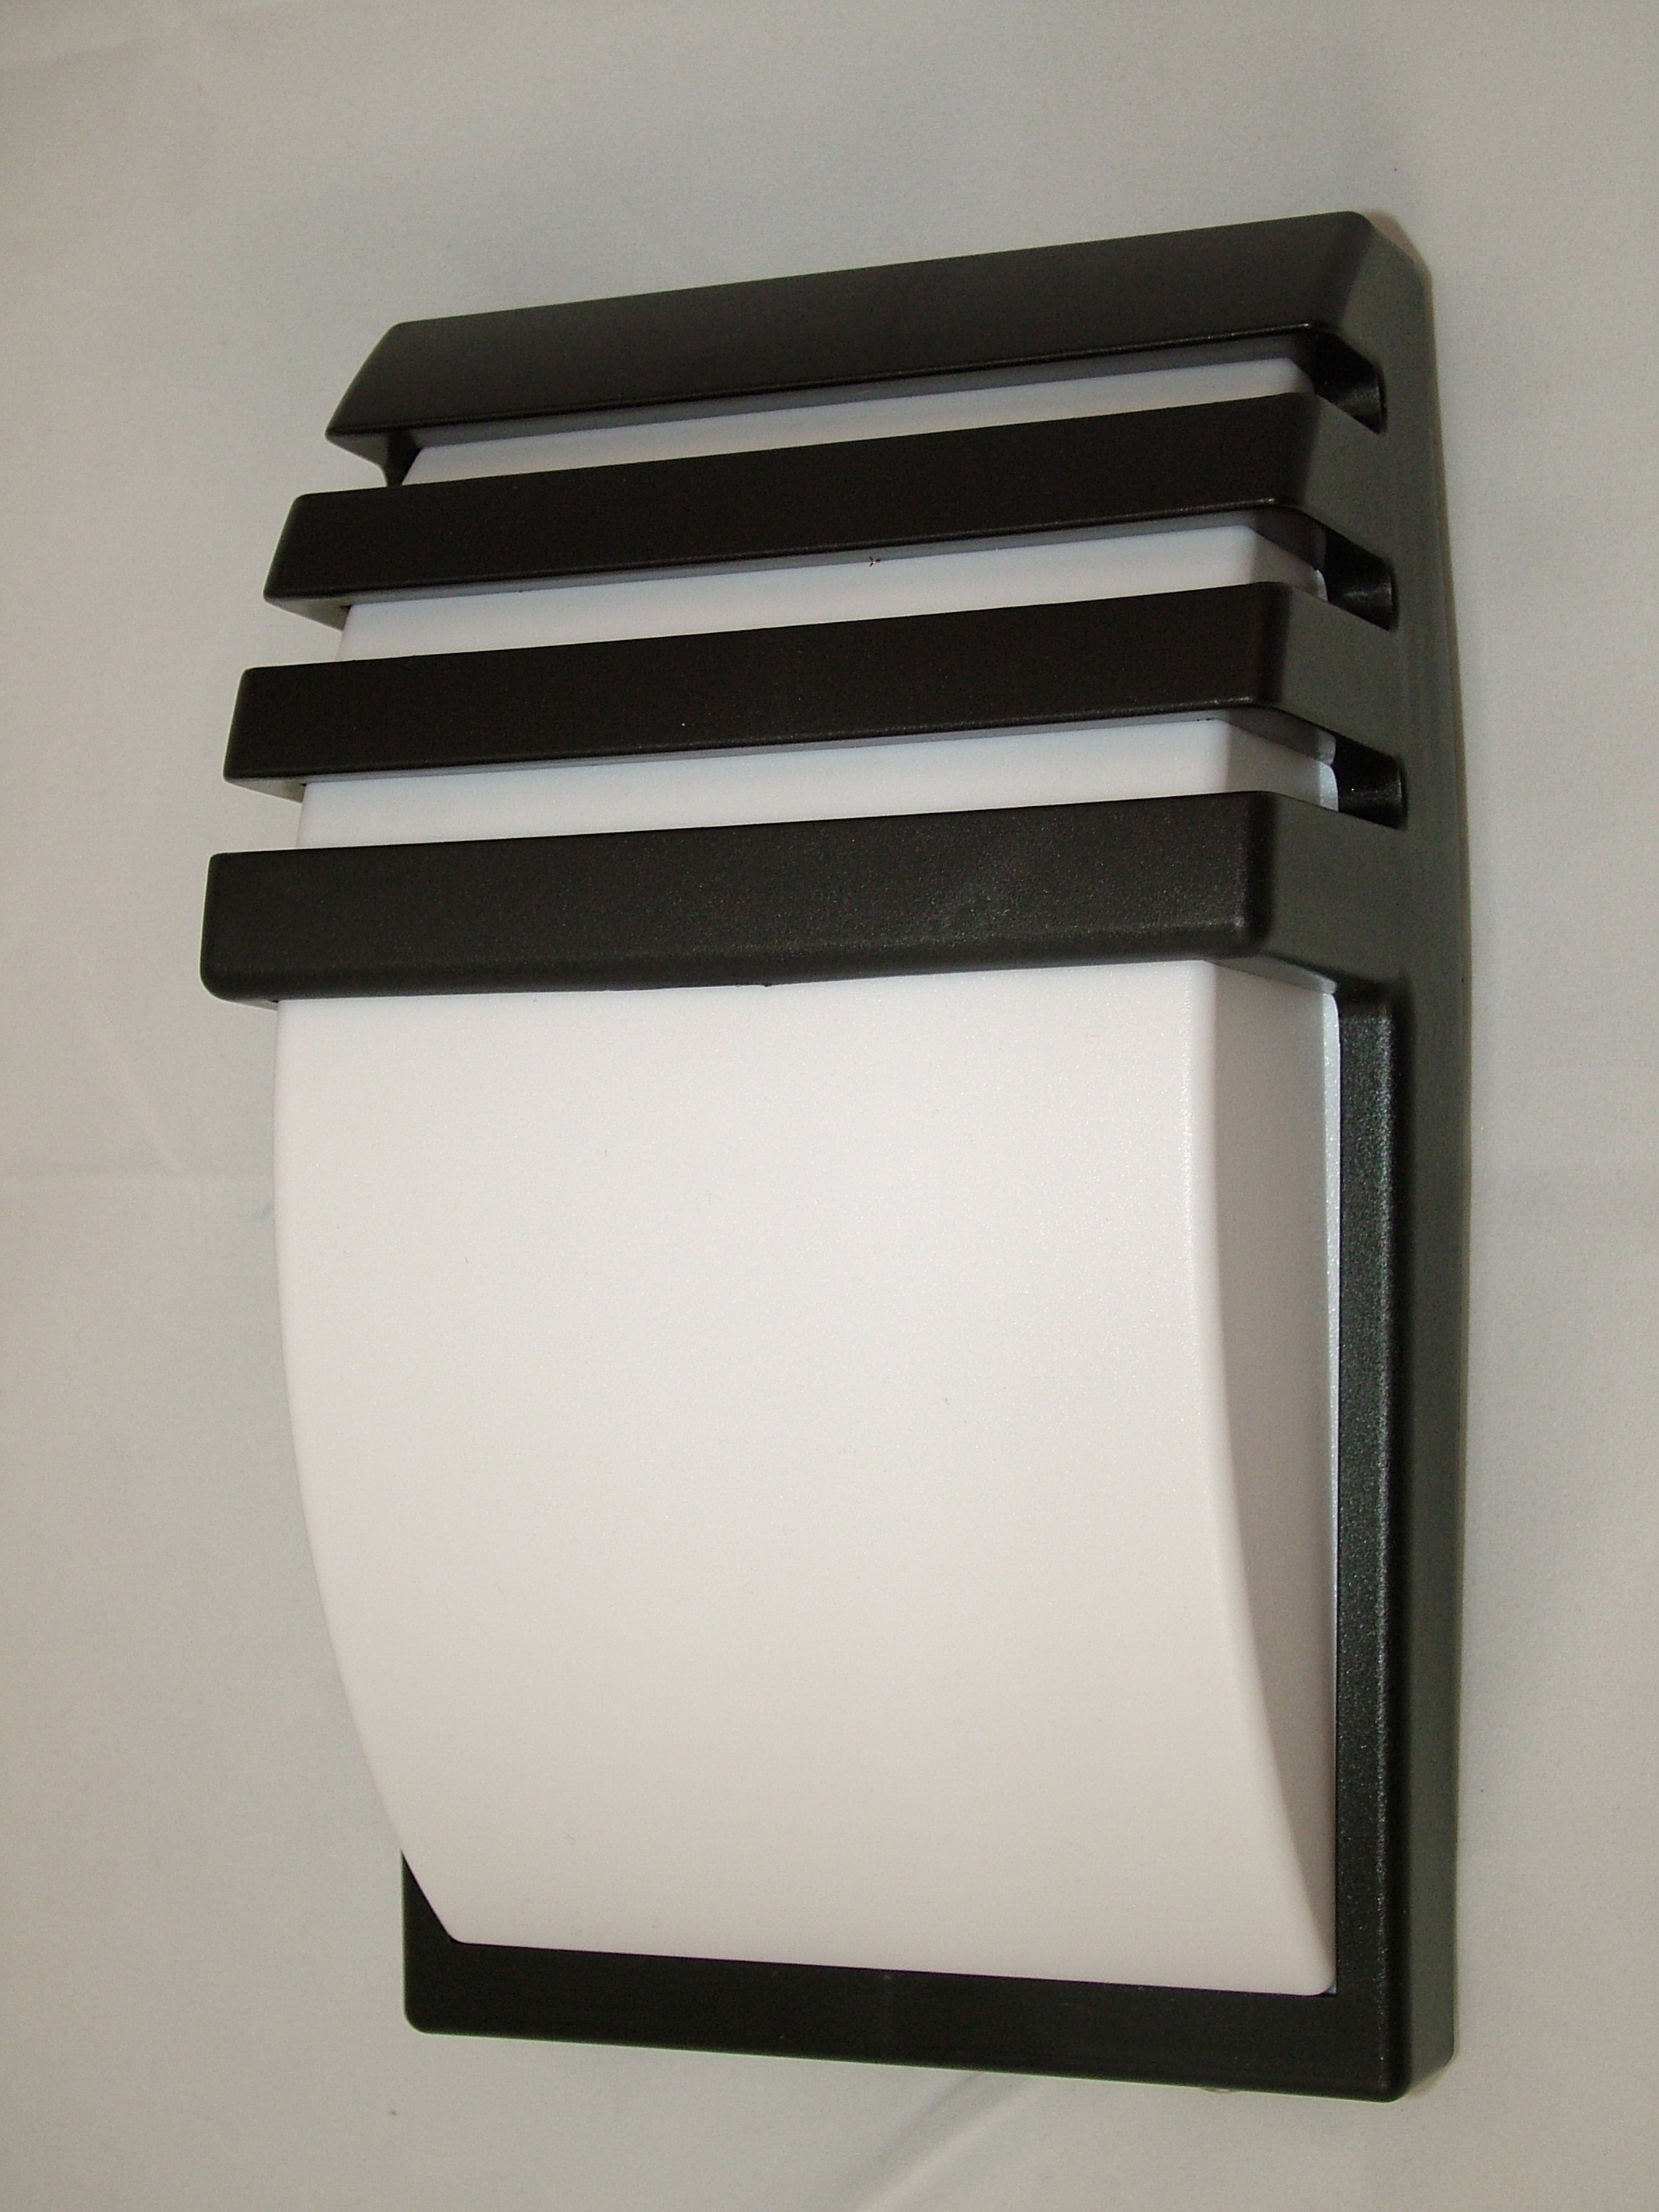 Contemporary Outdoor Wall Mount Lighting Throughout Latest Large Outdoor Modern Wall Mounted Lighting Fixtures With Black (View 5 of 20)